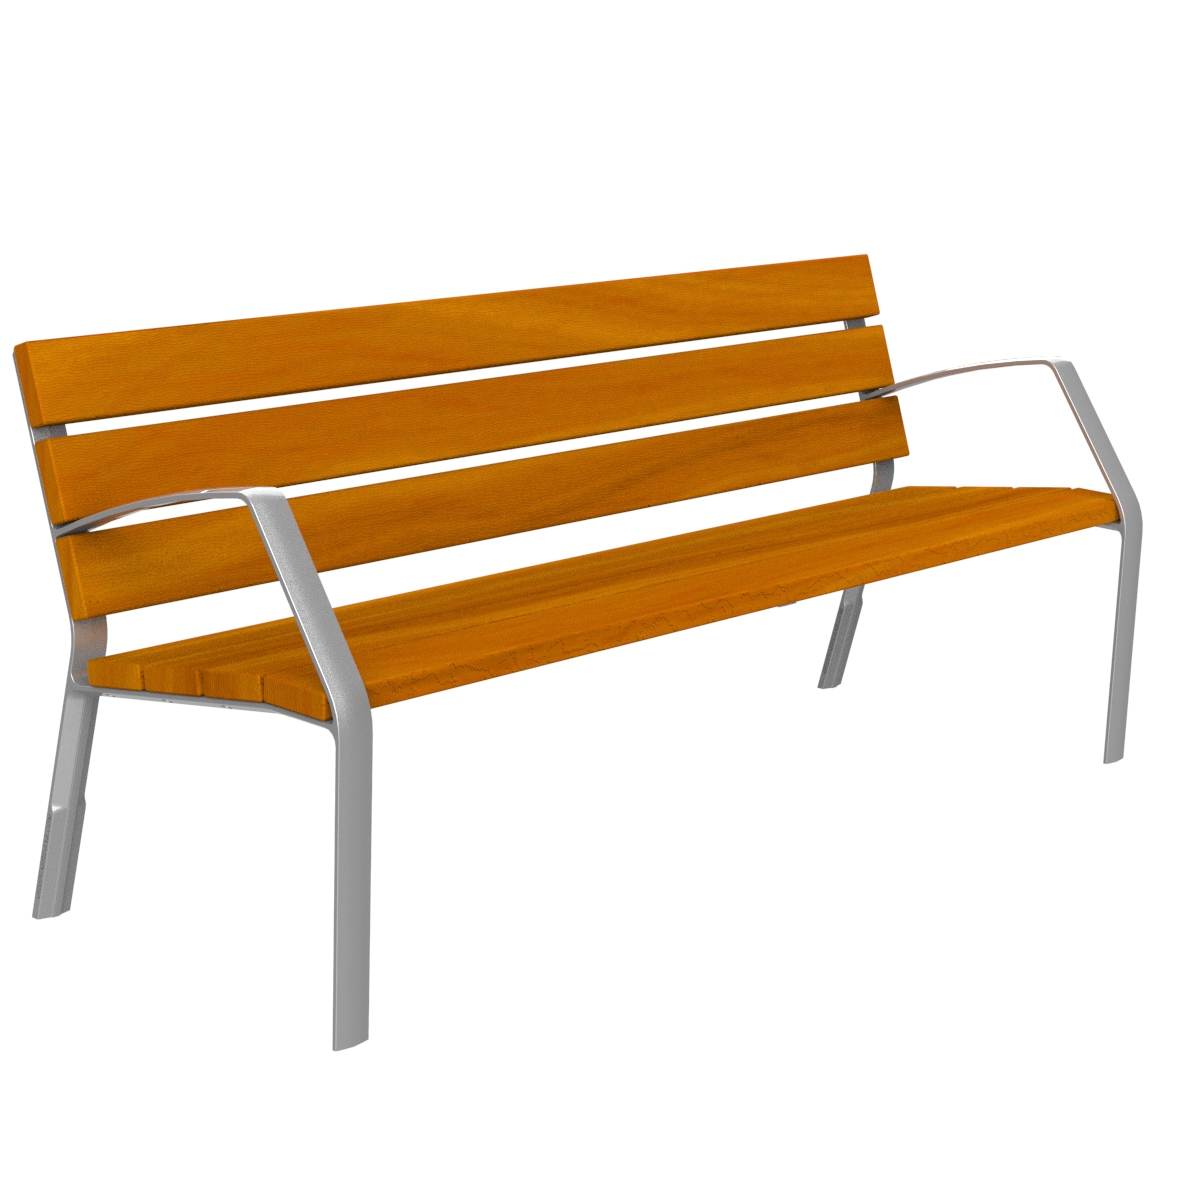 Bench Modo10 tropical wood and aluminium leg